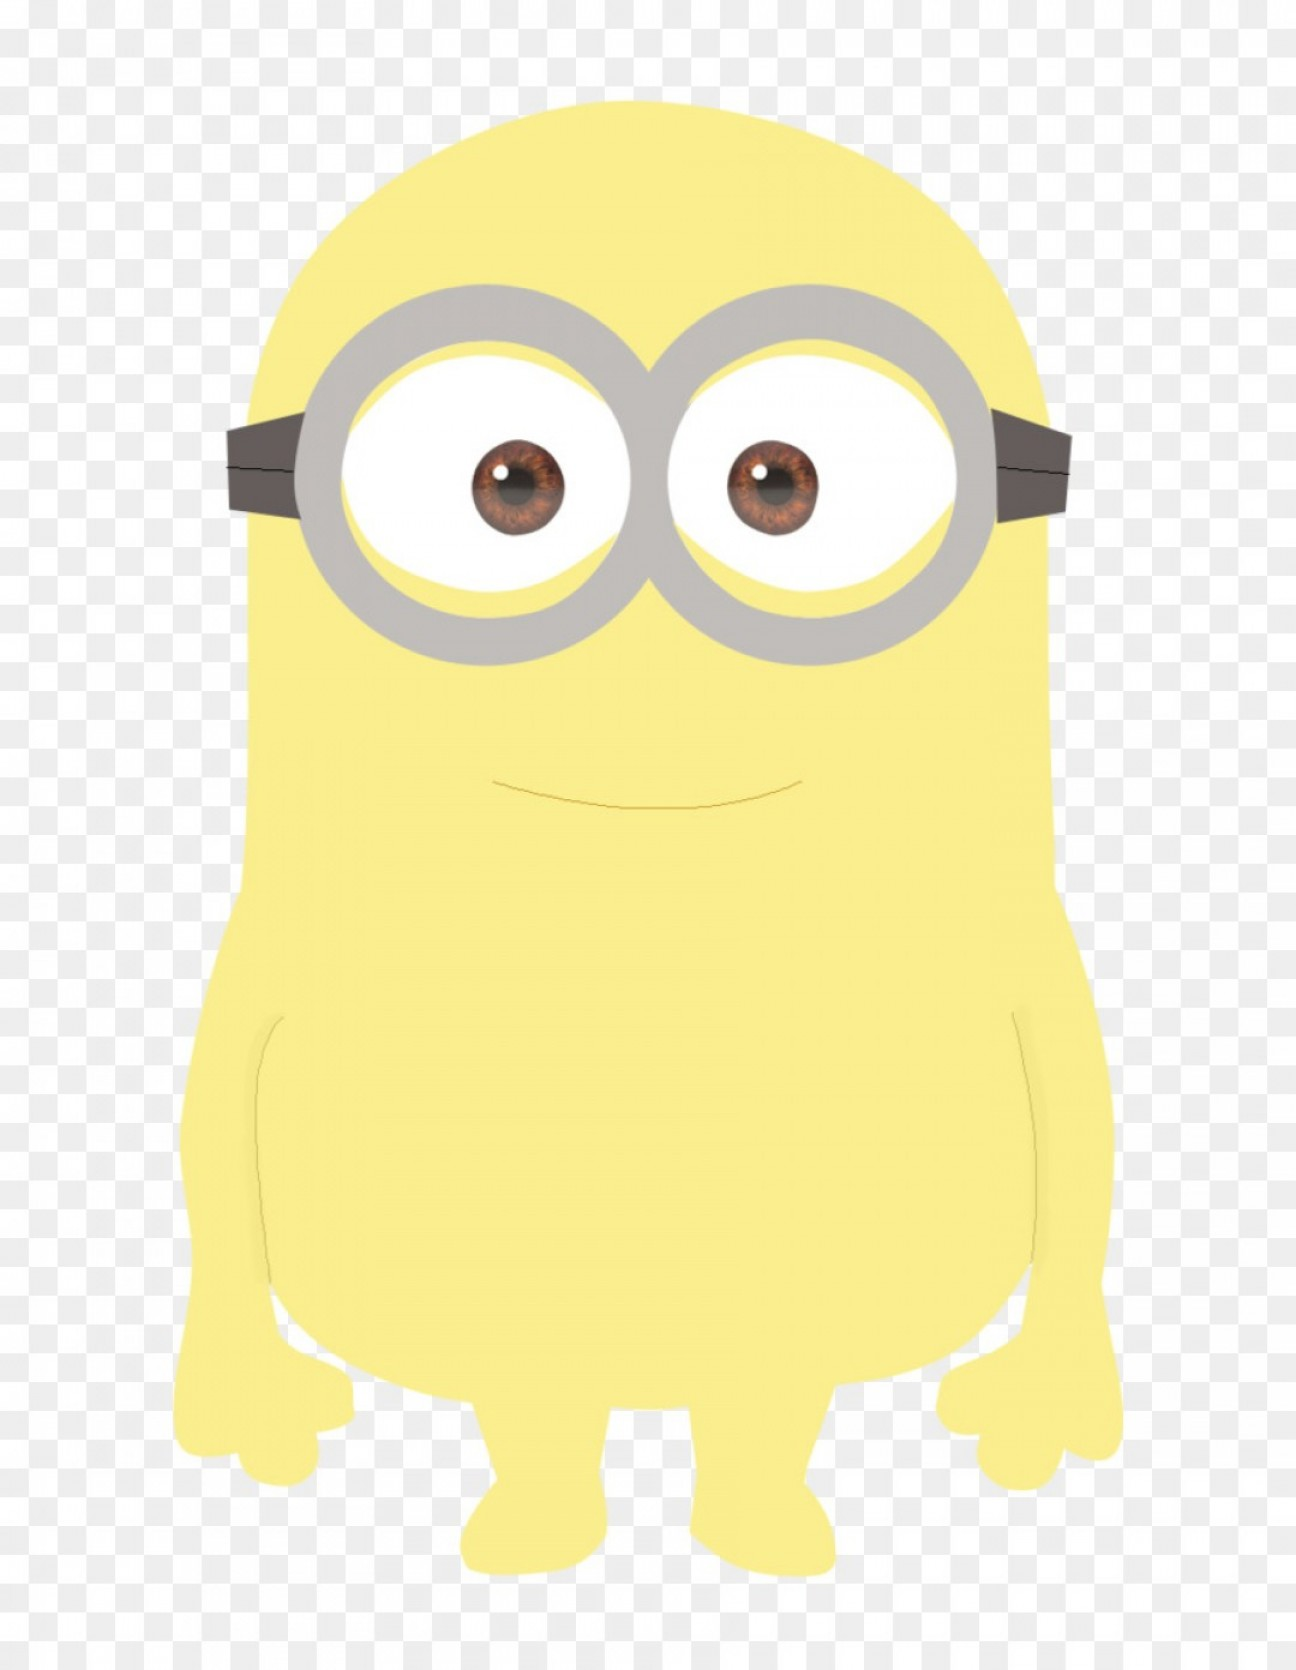 Despicable Me Vector Piranha: Png Jerry The Minion Minions Despicable Me Film Minion